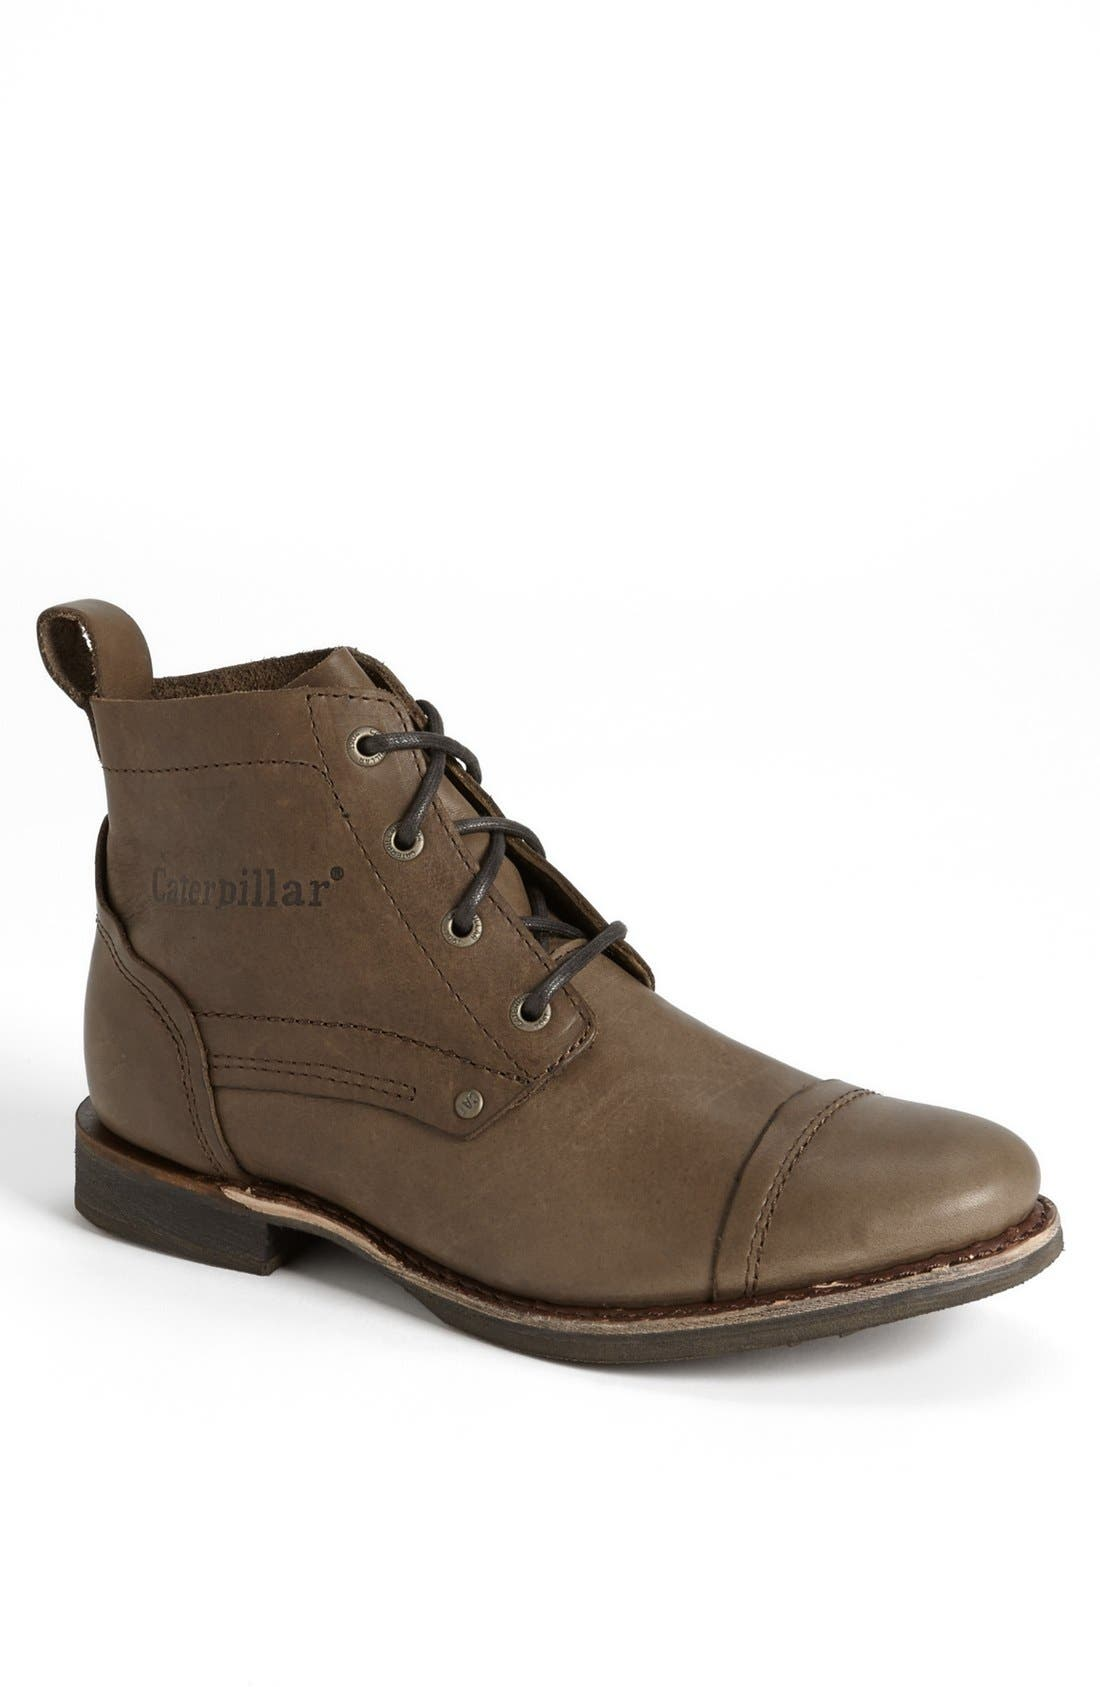 Alternate Image 1 Selected - Caterpillar 'Morrison' Cap Toe Boot (Men)